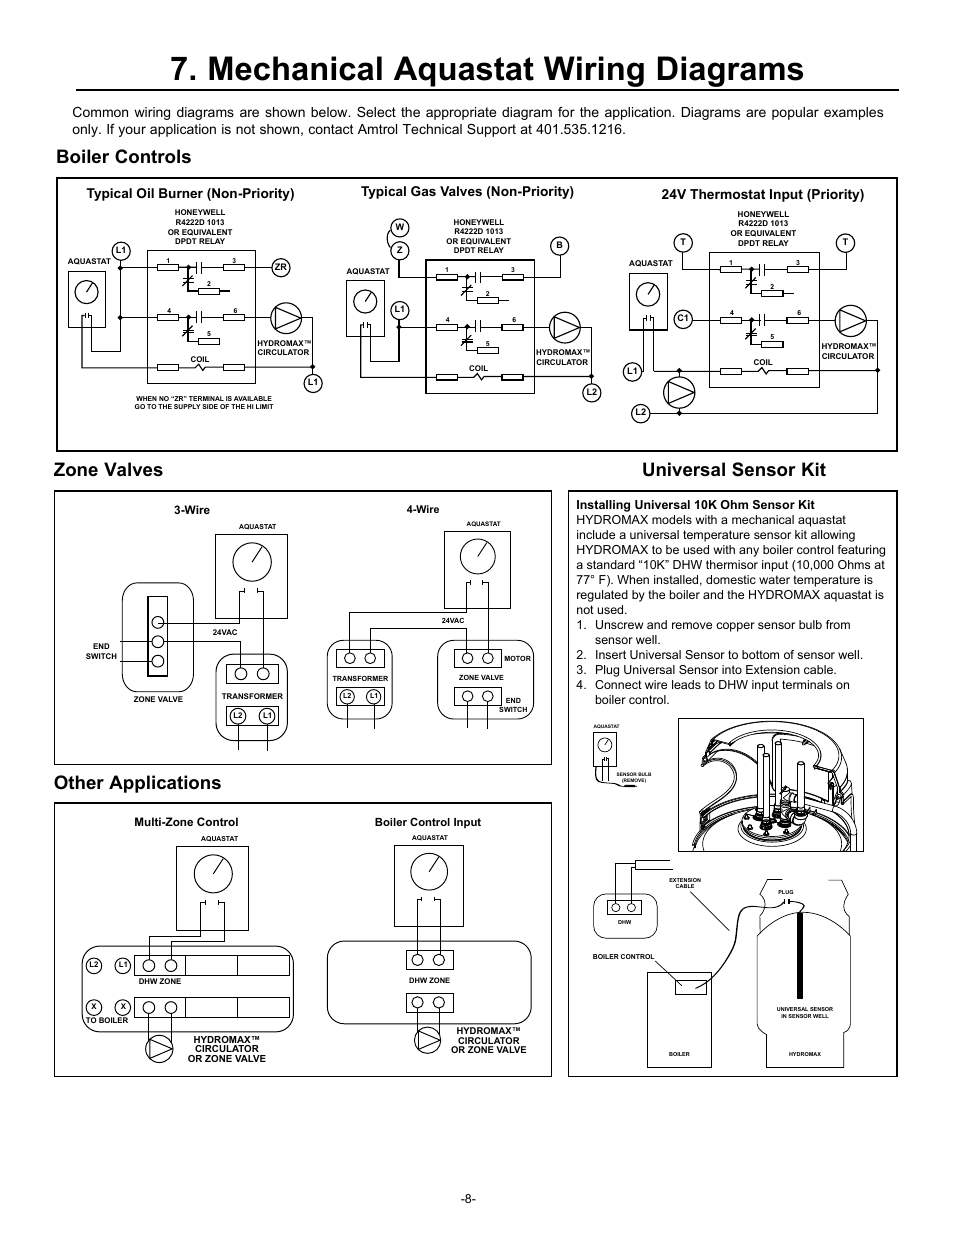 mechanical aquastat wiring diagrams typical oil burner non mechanical aquastat wiring diagrams typical oil burner non priority typical gas valves non priority amtrol hydromax hm 41l user manual page 8 12